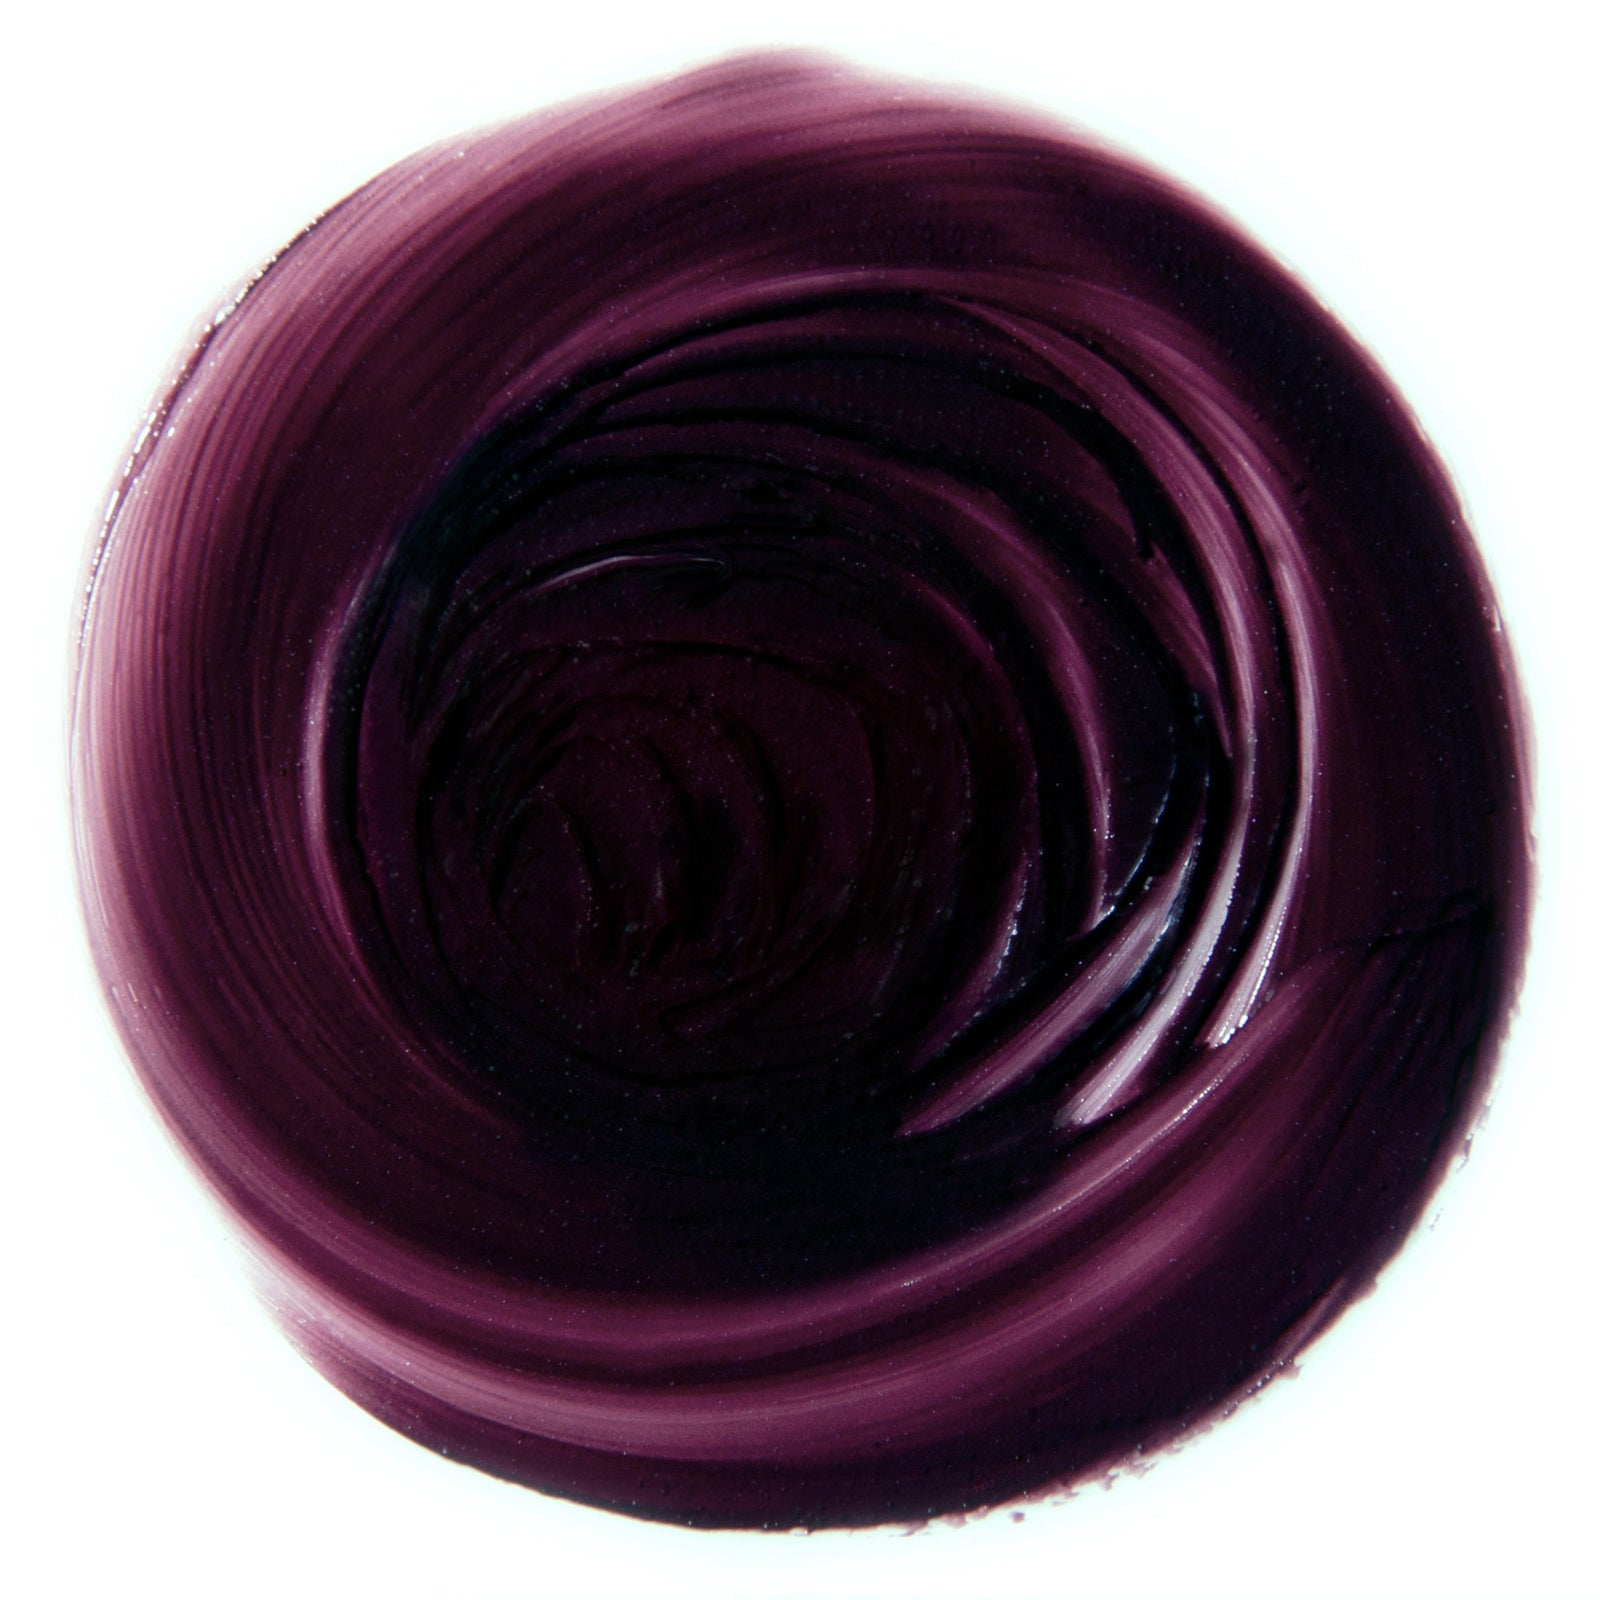 Blackthorn berry natural lipstick cruelty free makeup swatch